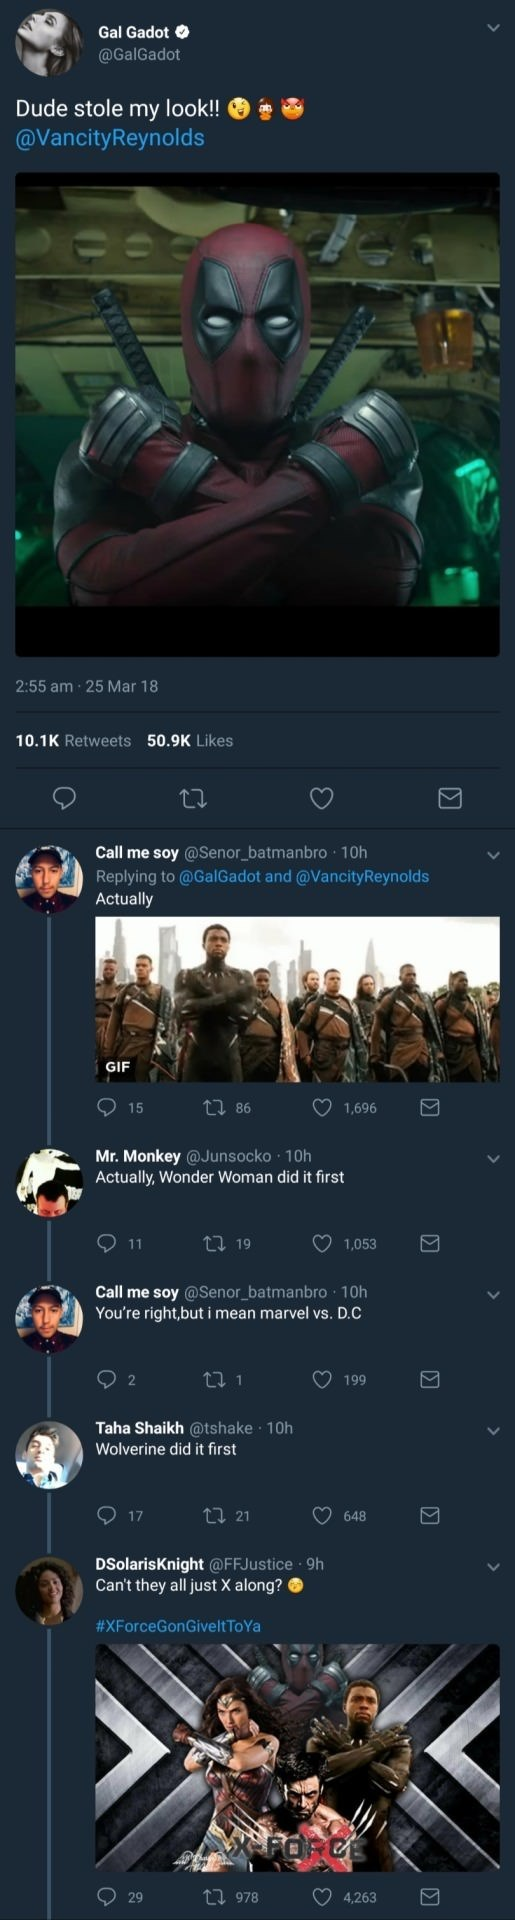 Text - Gal Gadot @GalGadot Dude stole my look!! @VancityReynolds 2:55 am-25 Mar 18 10.1K Retweets 50.9K Likes Call me soy @Senor batmanbro 10h Replying to @GalGadot and @VancityReynolds Actually GIF 1,696 15 1 86 Mr. Monkey@Junsocko 10h Actually, Wonder Woman did it first 11 119 1,053 Call me soy @Senor_batmanbro 10h You're right,but i mean marvel vs. D.C 199 Taha Shaikh @tshake 10h Wolverine did it first 17 L 21 648 DSolarisKnight @FFJustice 9h Can't they all just X along? #XForceGonGivelt To Y